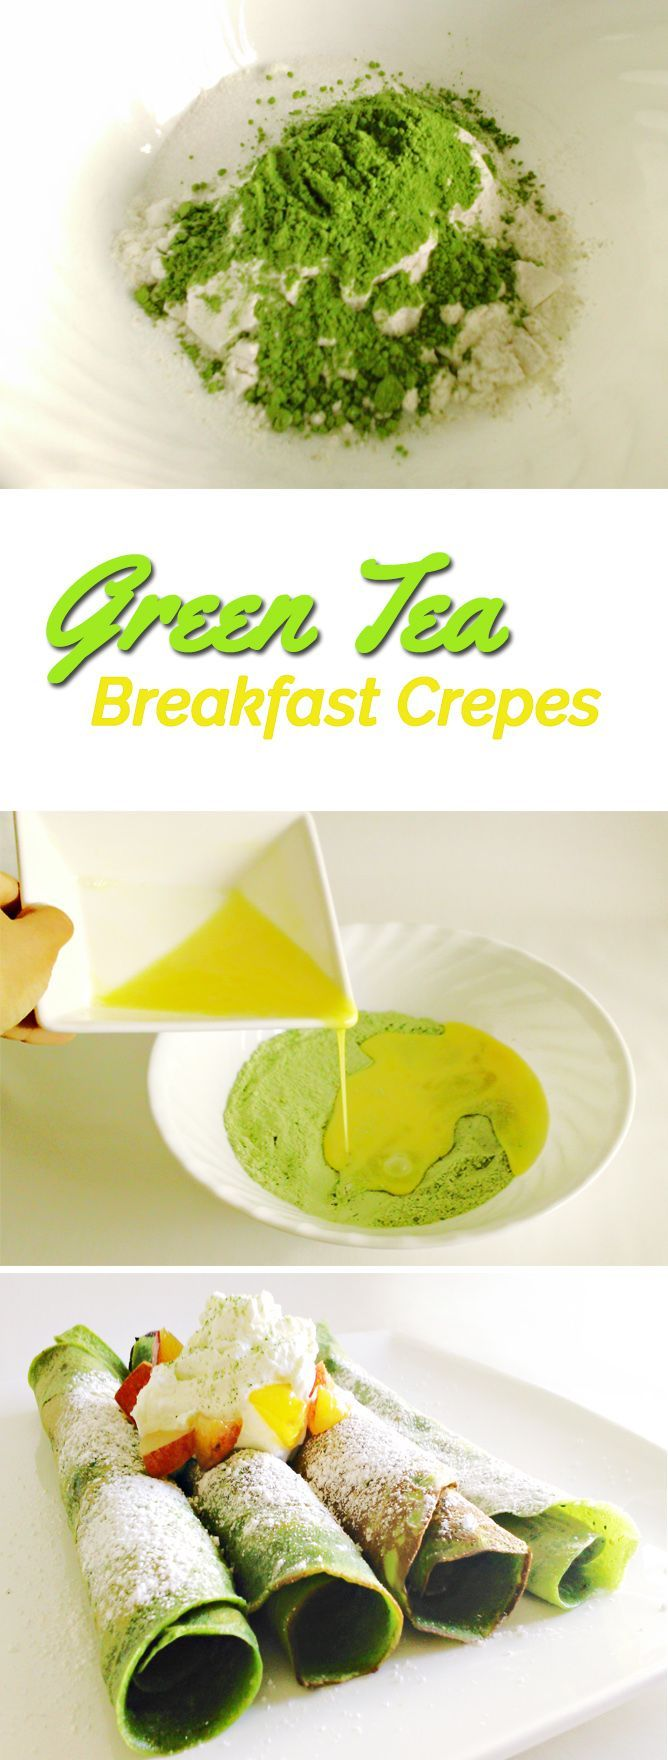 Matcha green tea can be so versatile, and adding it as an ingredient gives some of our favorite foods, such as crepes, an energizing, antioxidant-packed boost! With nutritional properties equivalent to 10x that of regular green tea, a little matcha goes a long way. But it's not only about nutrition – these matcha green tea crepes taste as appetizing as they look Find more stuff: www.victoriasbestmatchatea.com